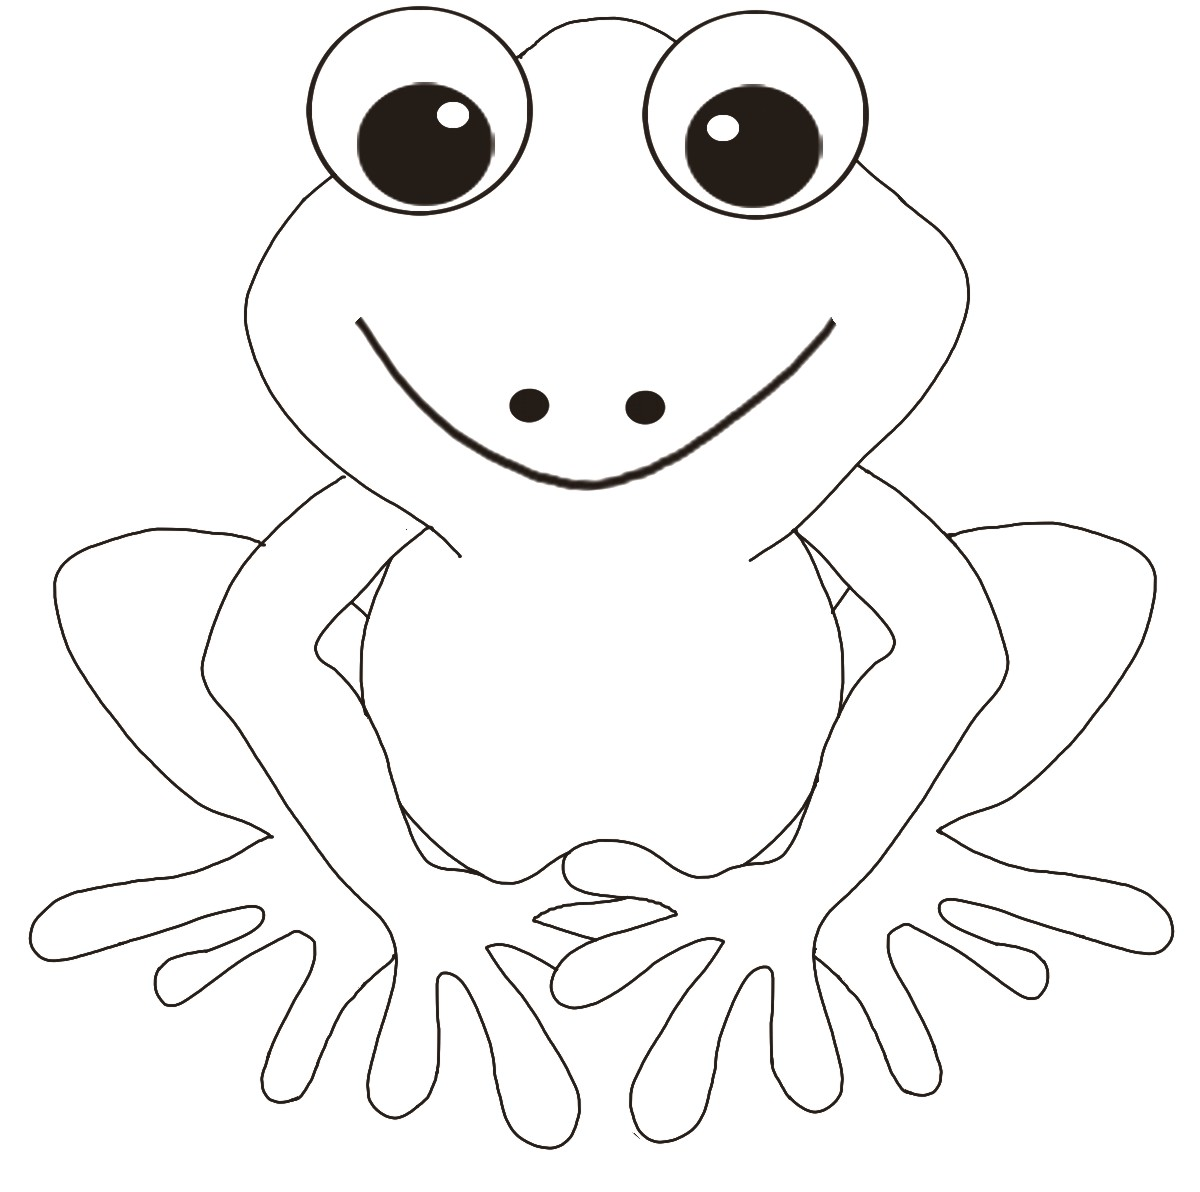 dark frog coloring pages - photo#27